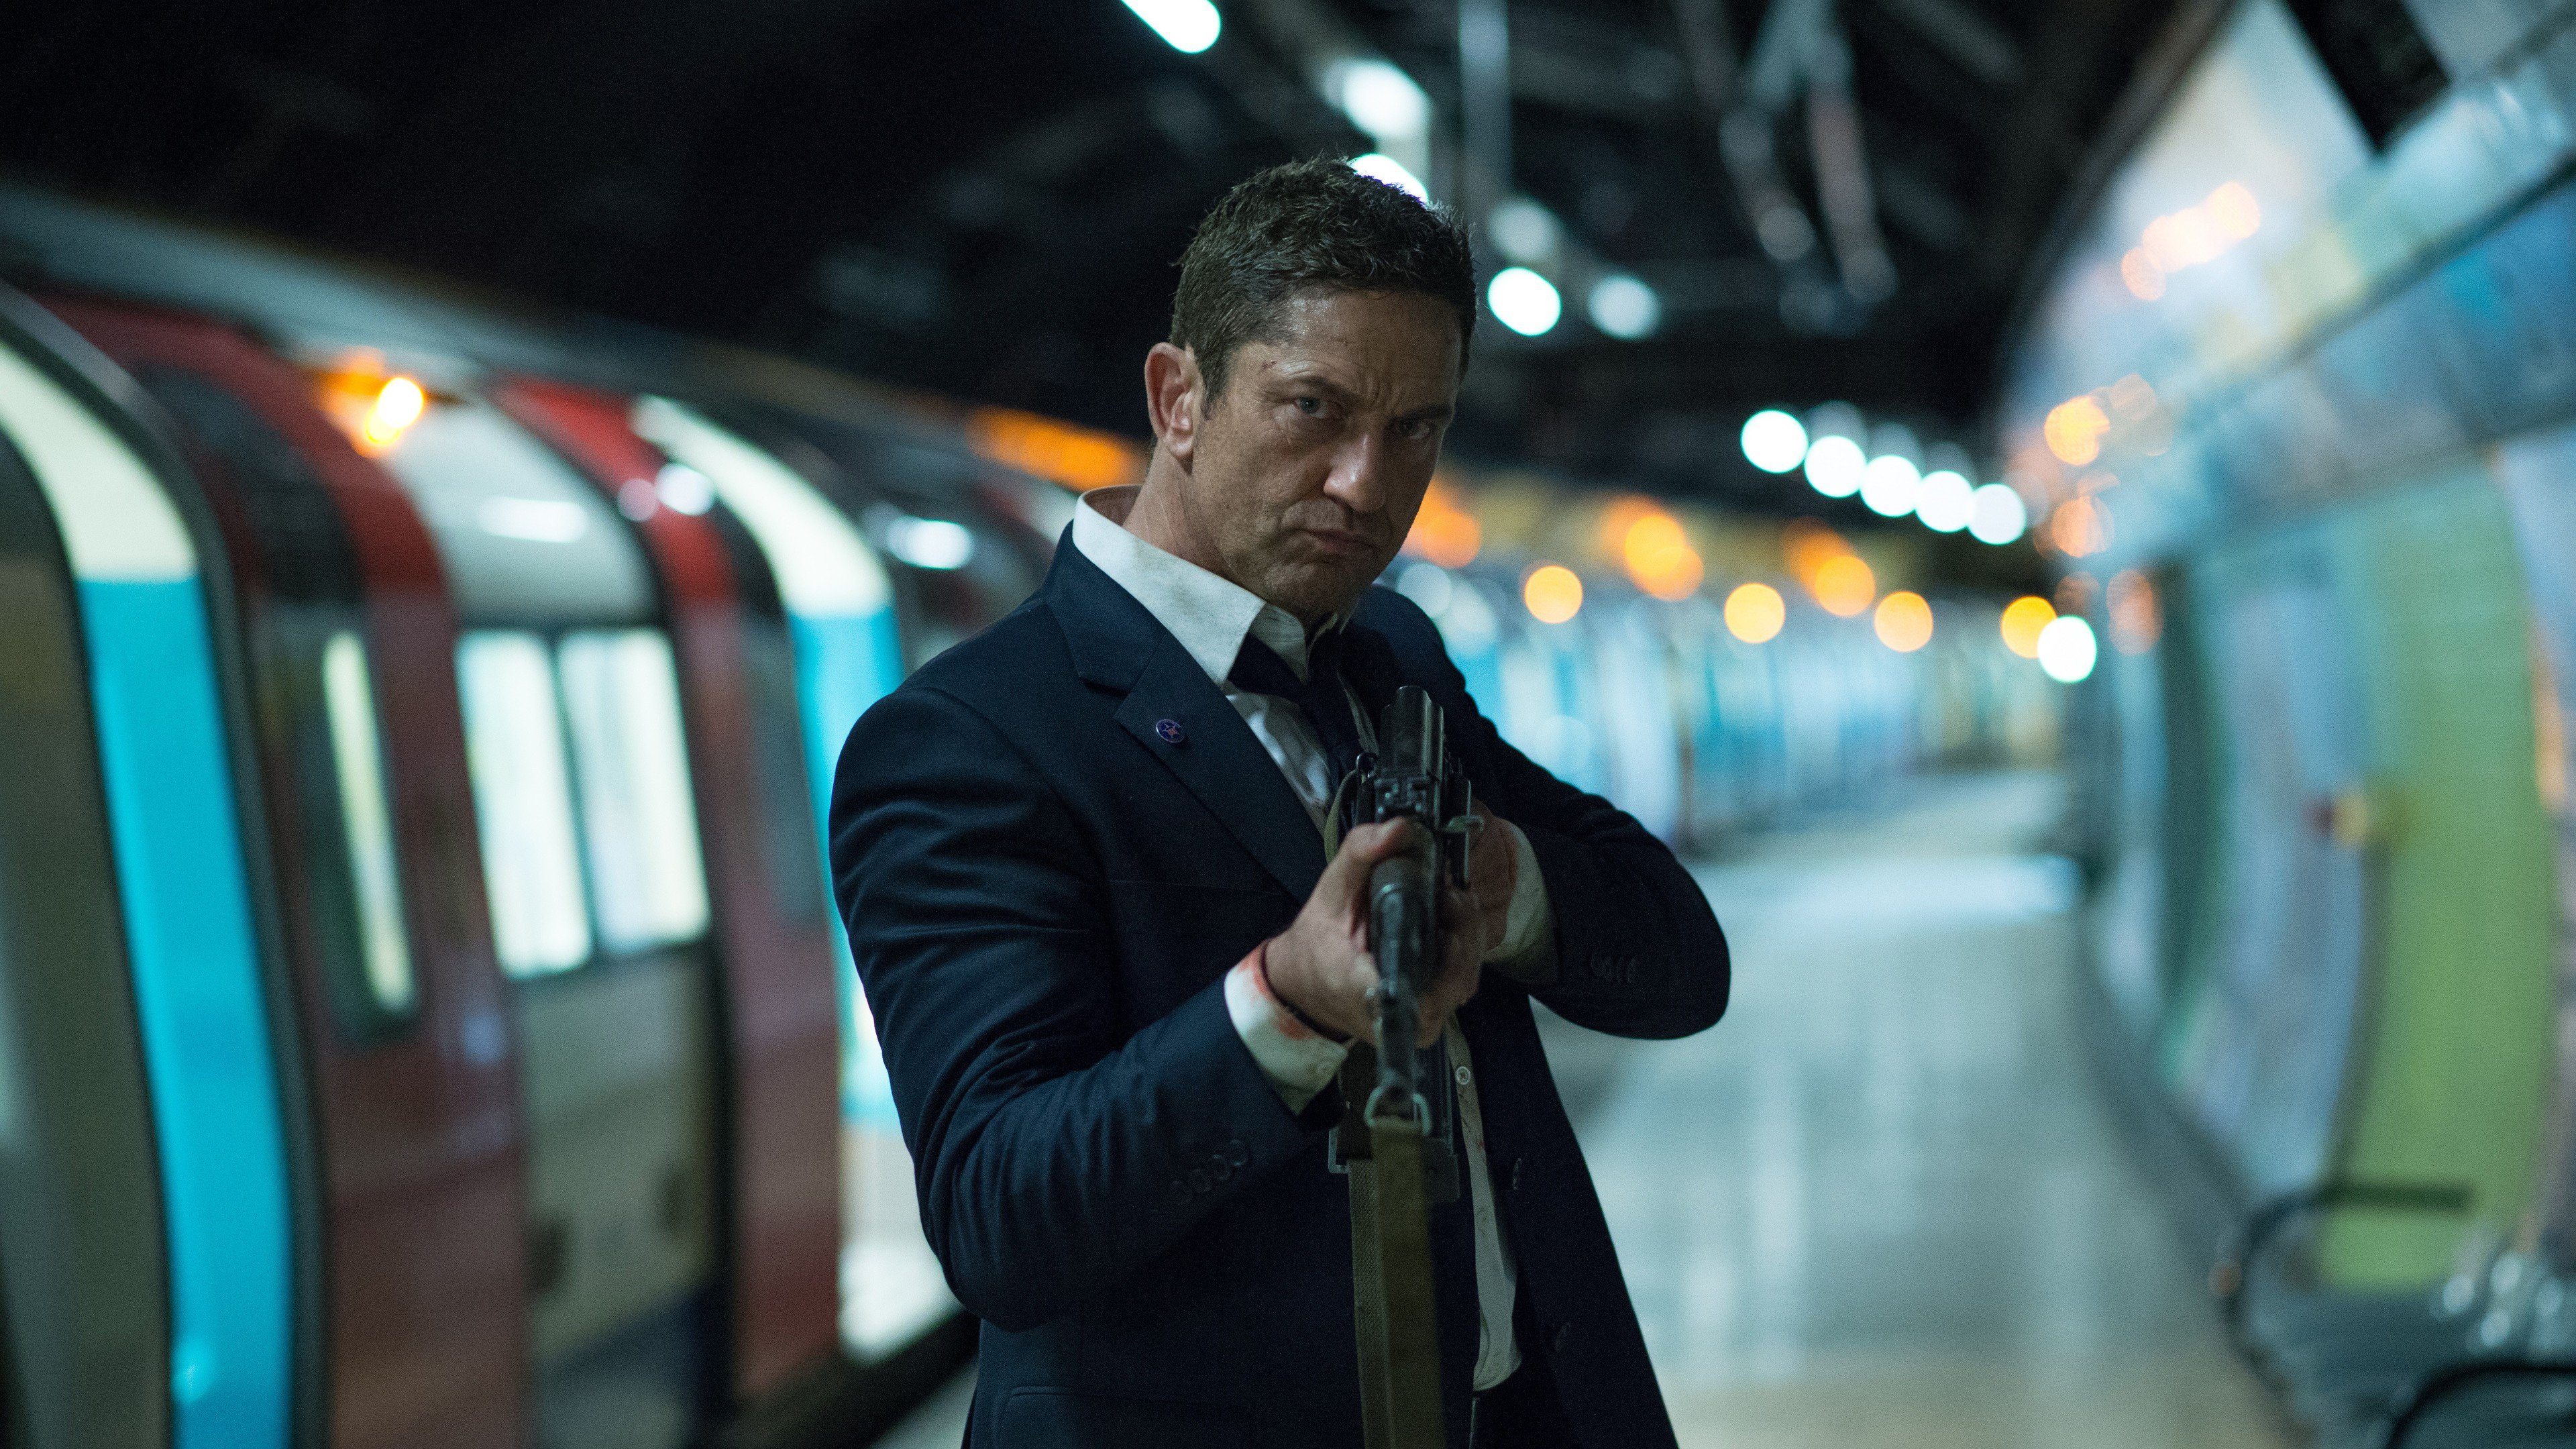 london has fallen widescreen hd wallpaper 52330